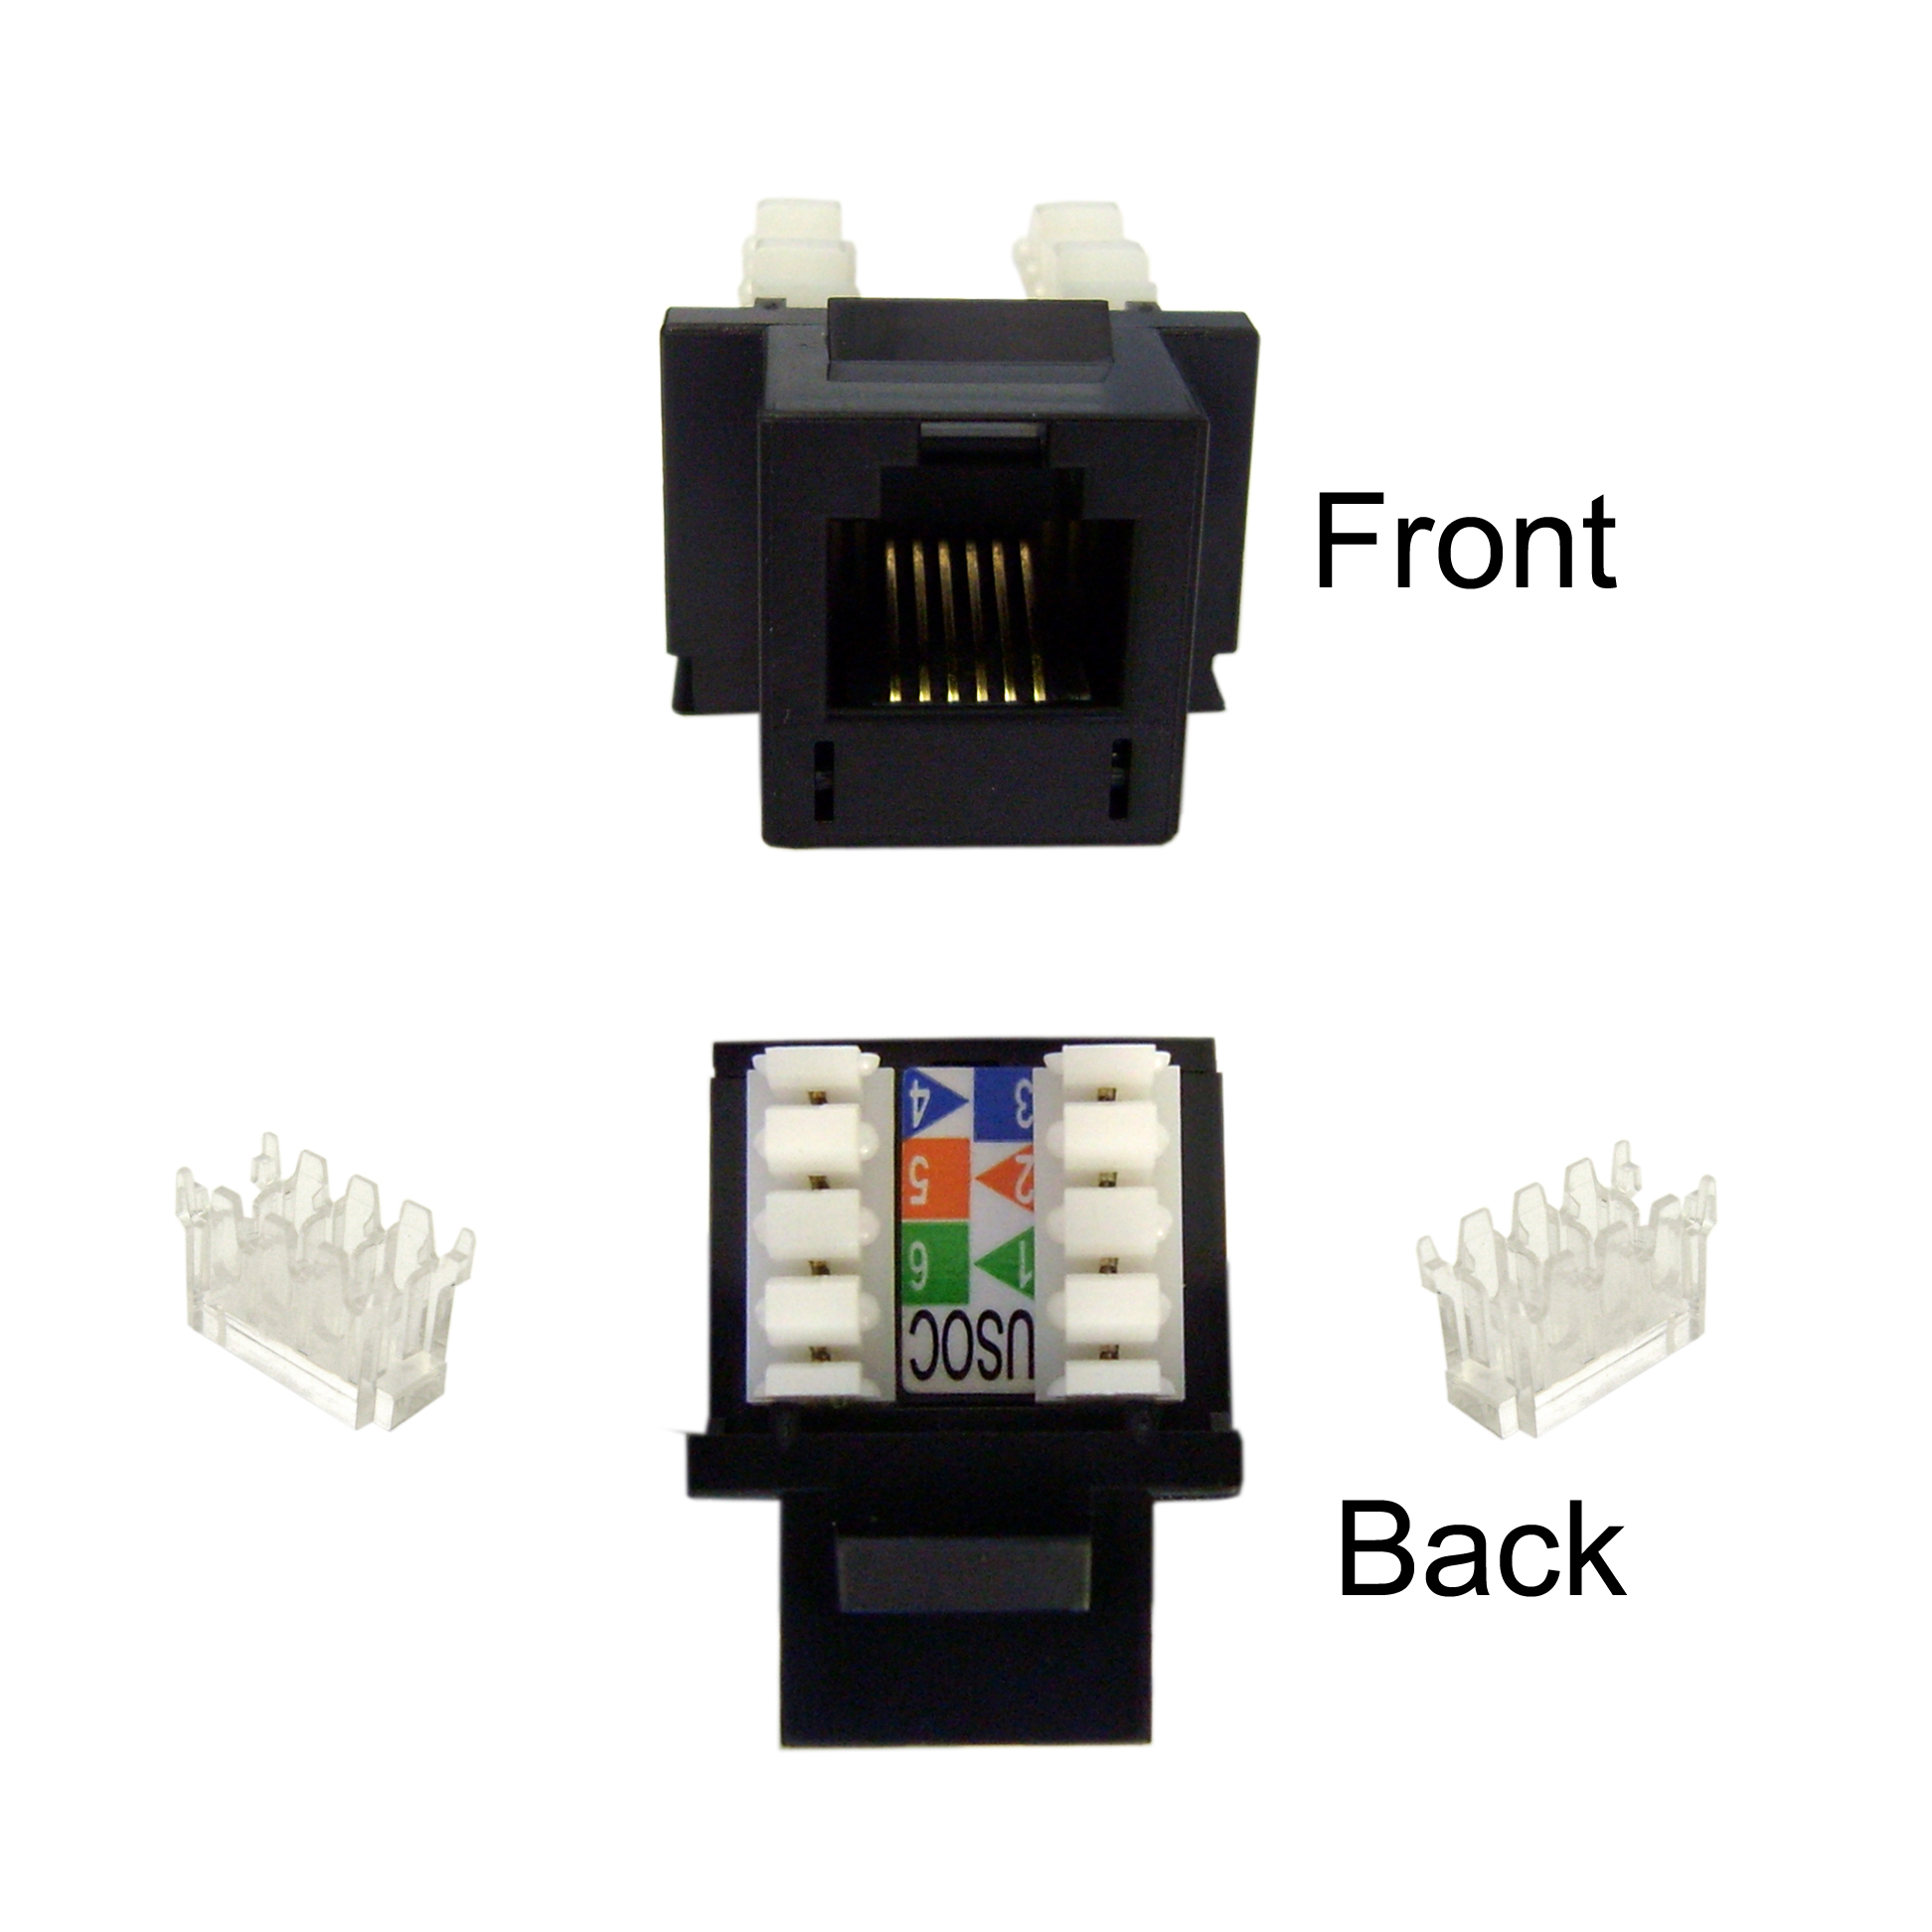 Keystone Insert, Black, Phone/Data Jack, RJ11 / RJ12 Female to 110